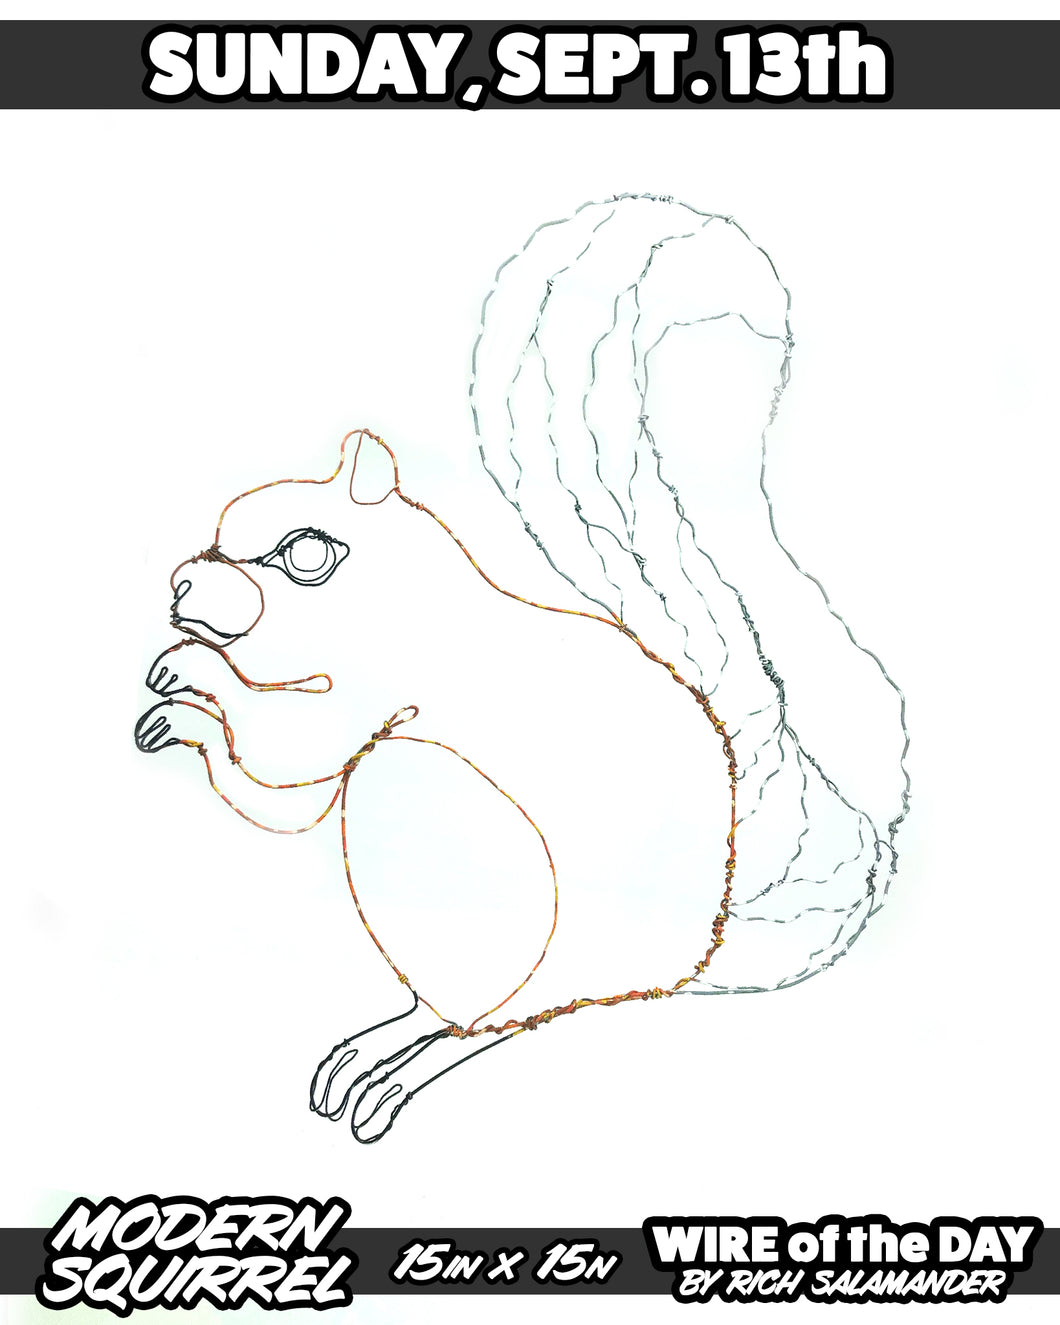 WIRE of the DAY MODERN SQUIRREL